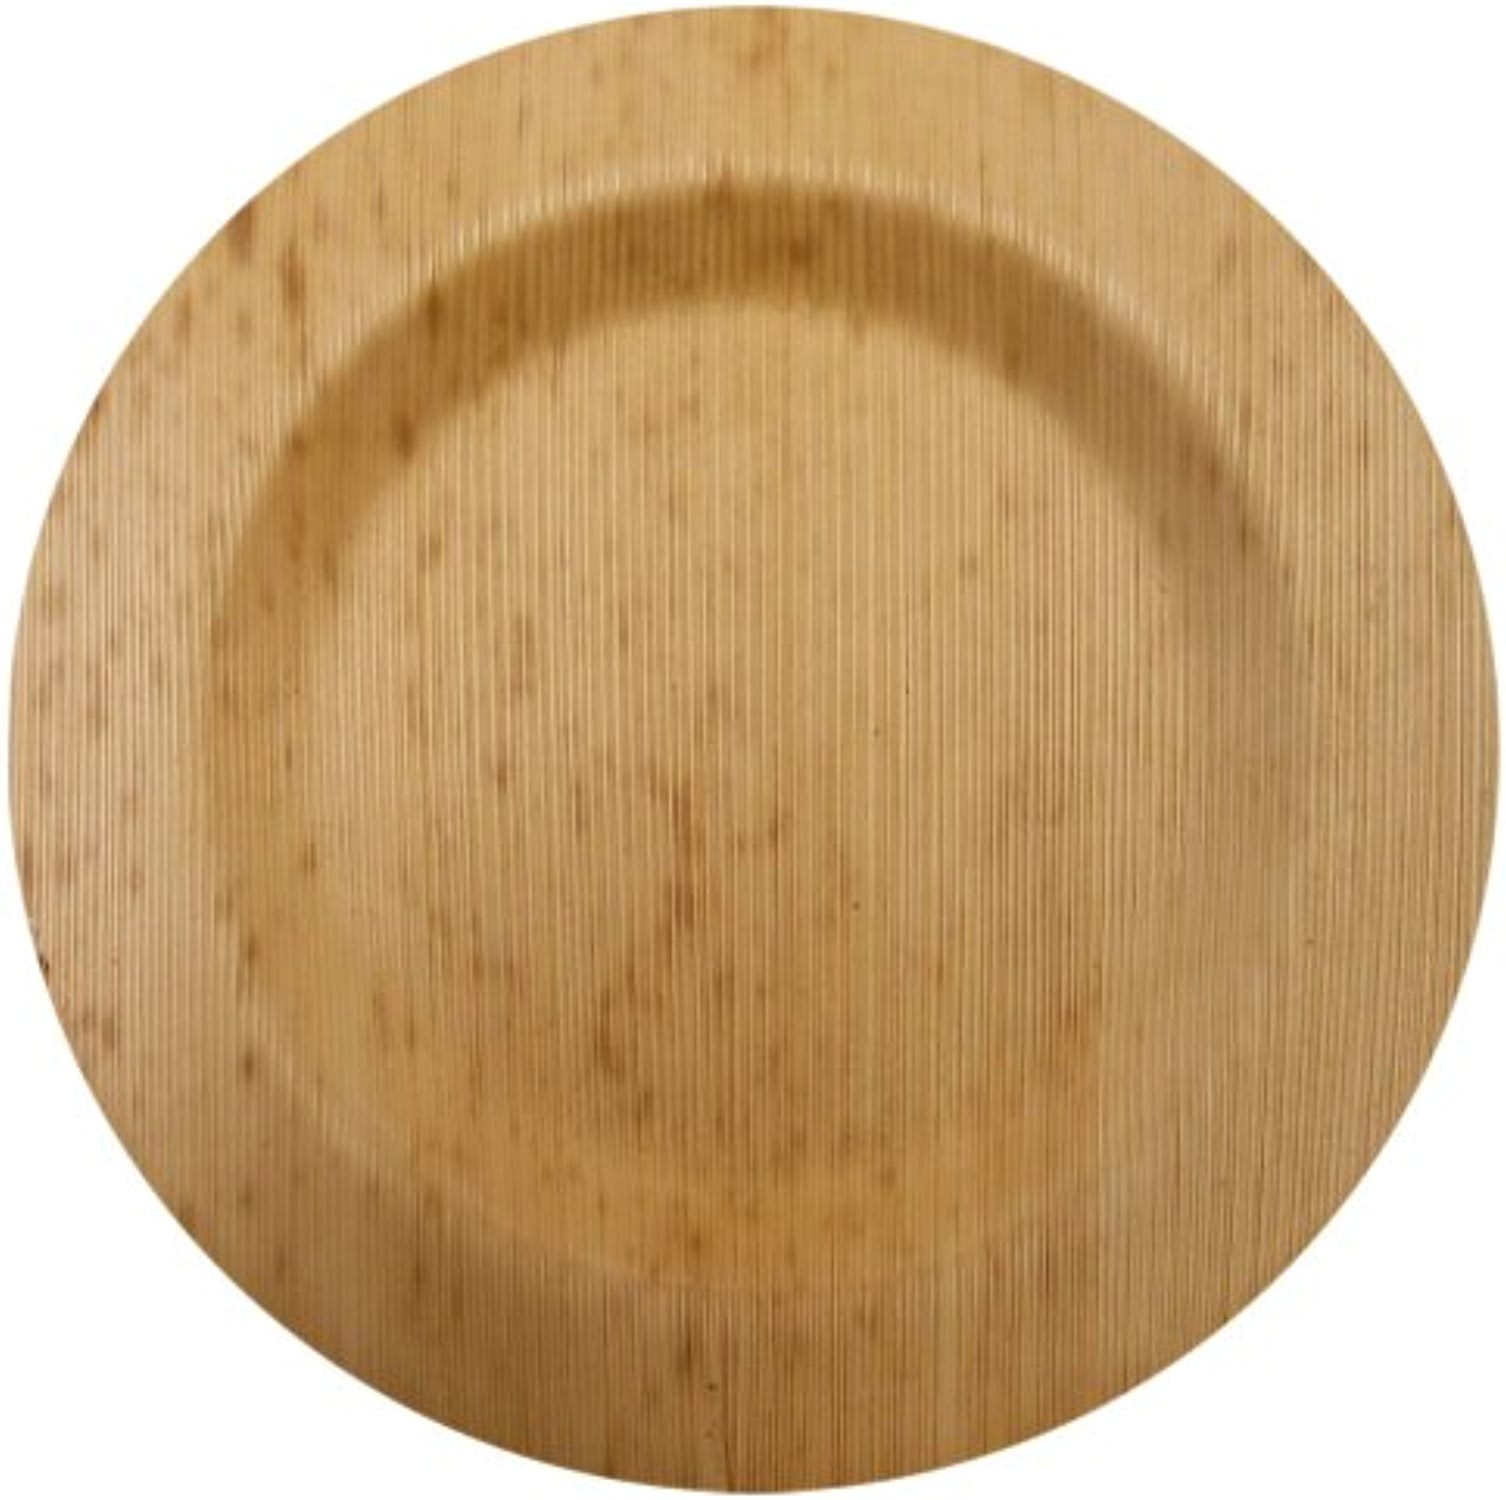 Bamboo Studios 6-Inch Round Plate, 8-Pack, Natural by Bamboo Studios